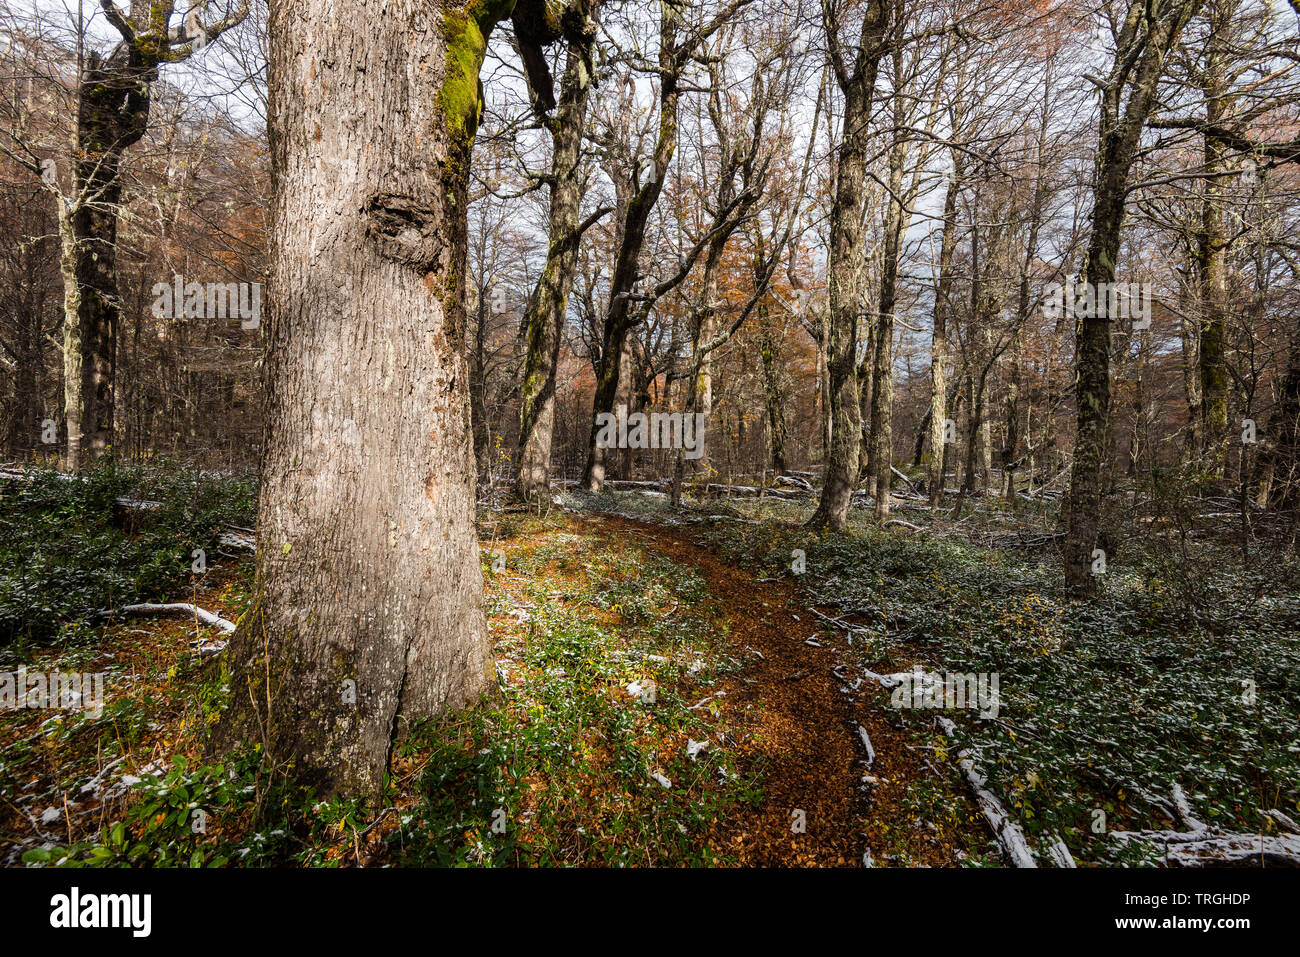 Autumn in the heart of the Mapuche territory, temperate forest, Chile Stock Photo